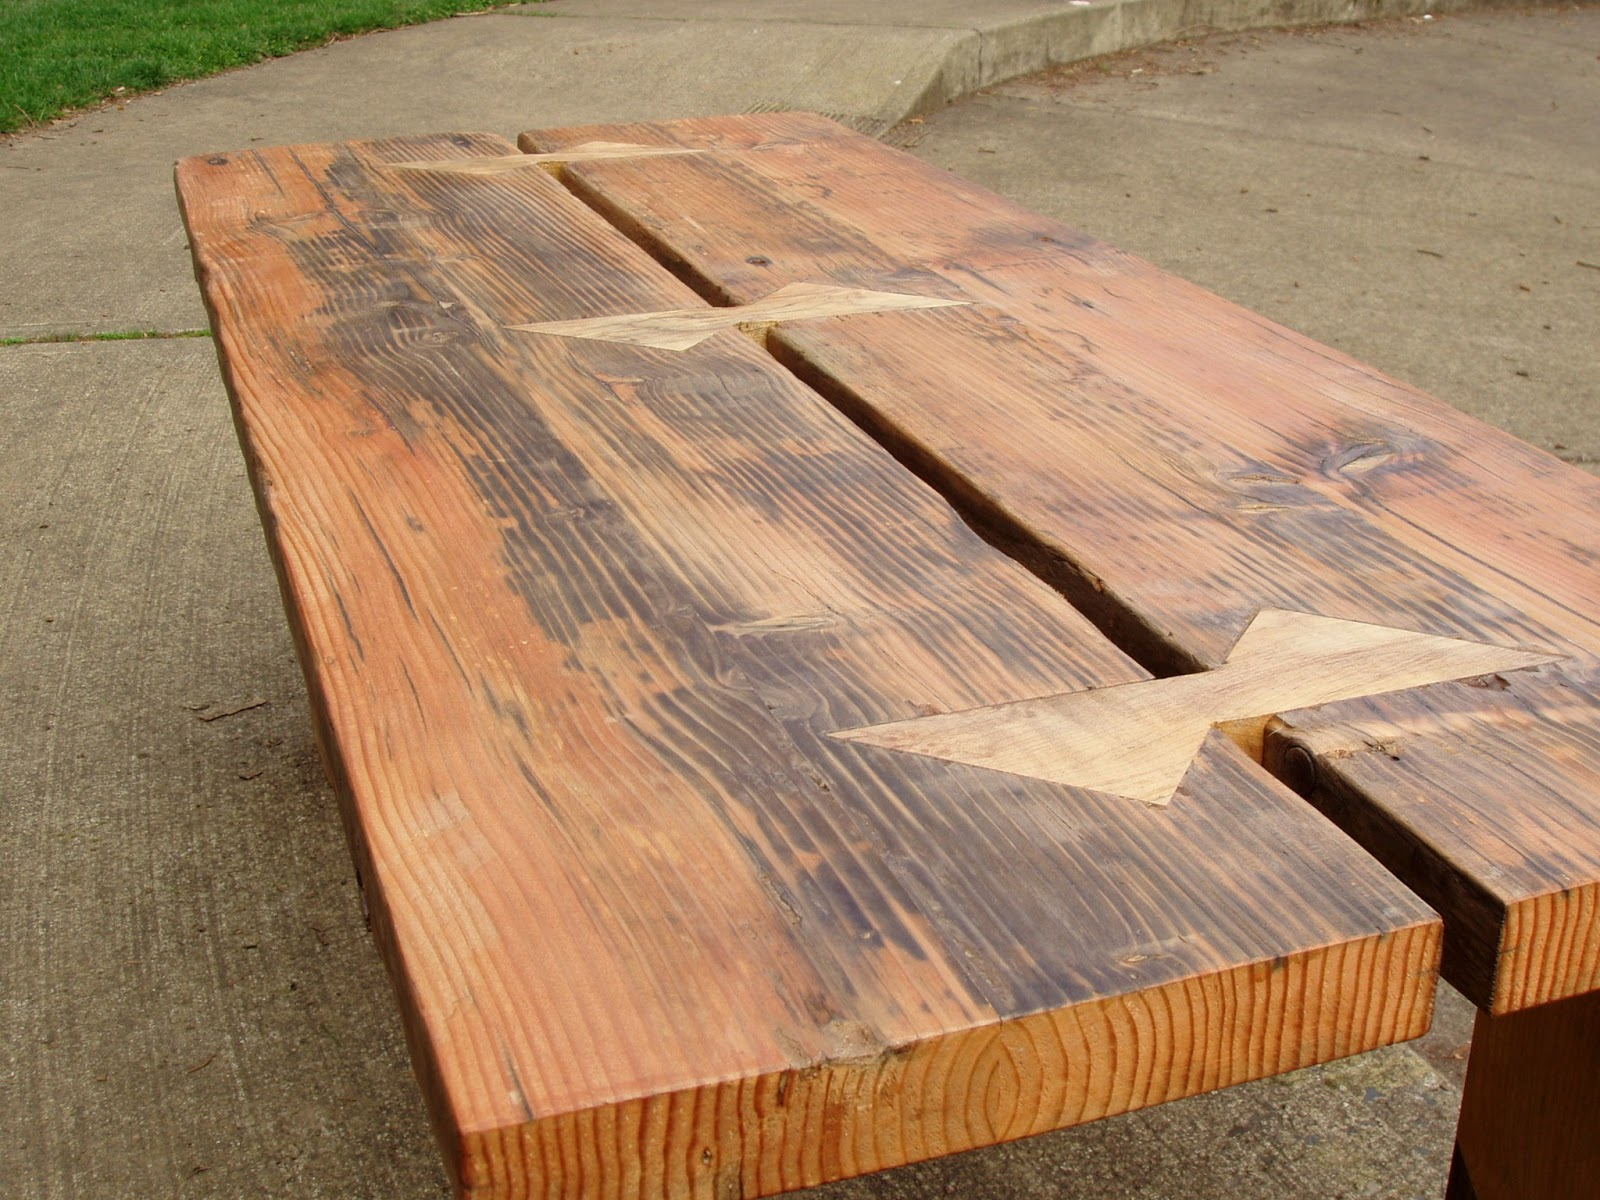 Pnw reclaimed wood furniture for Reclaimed wood oregon